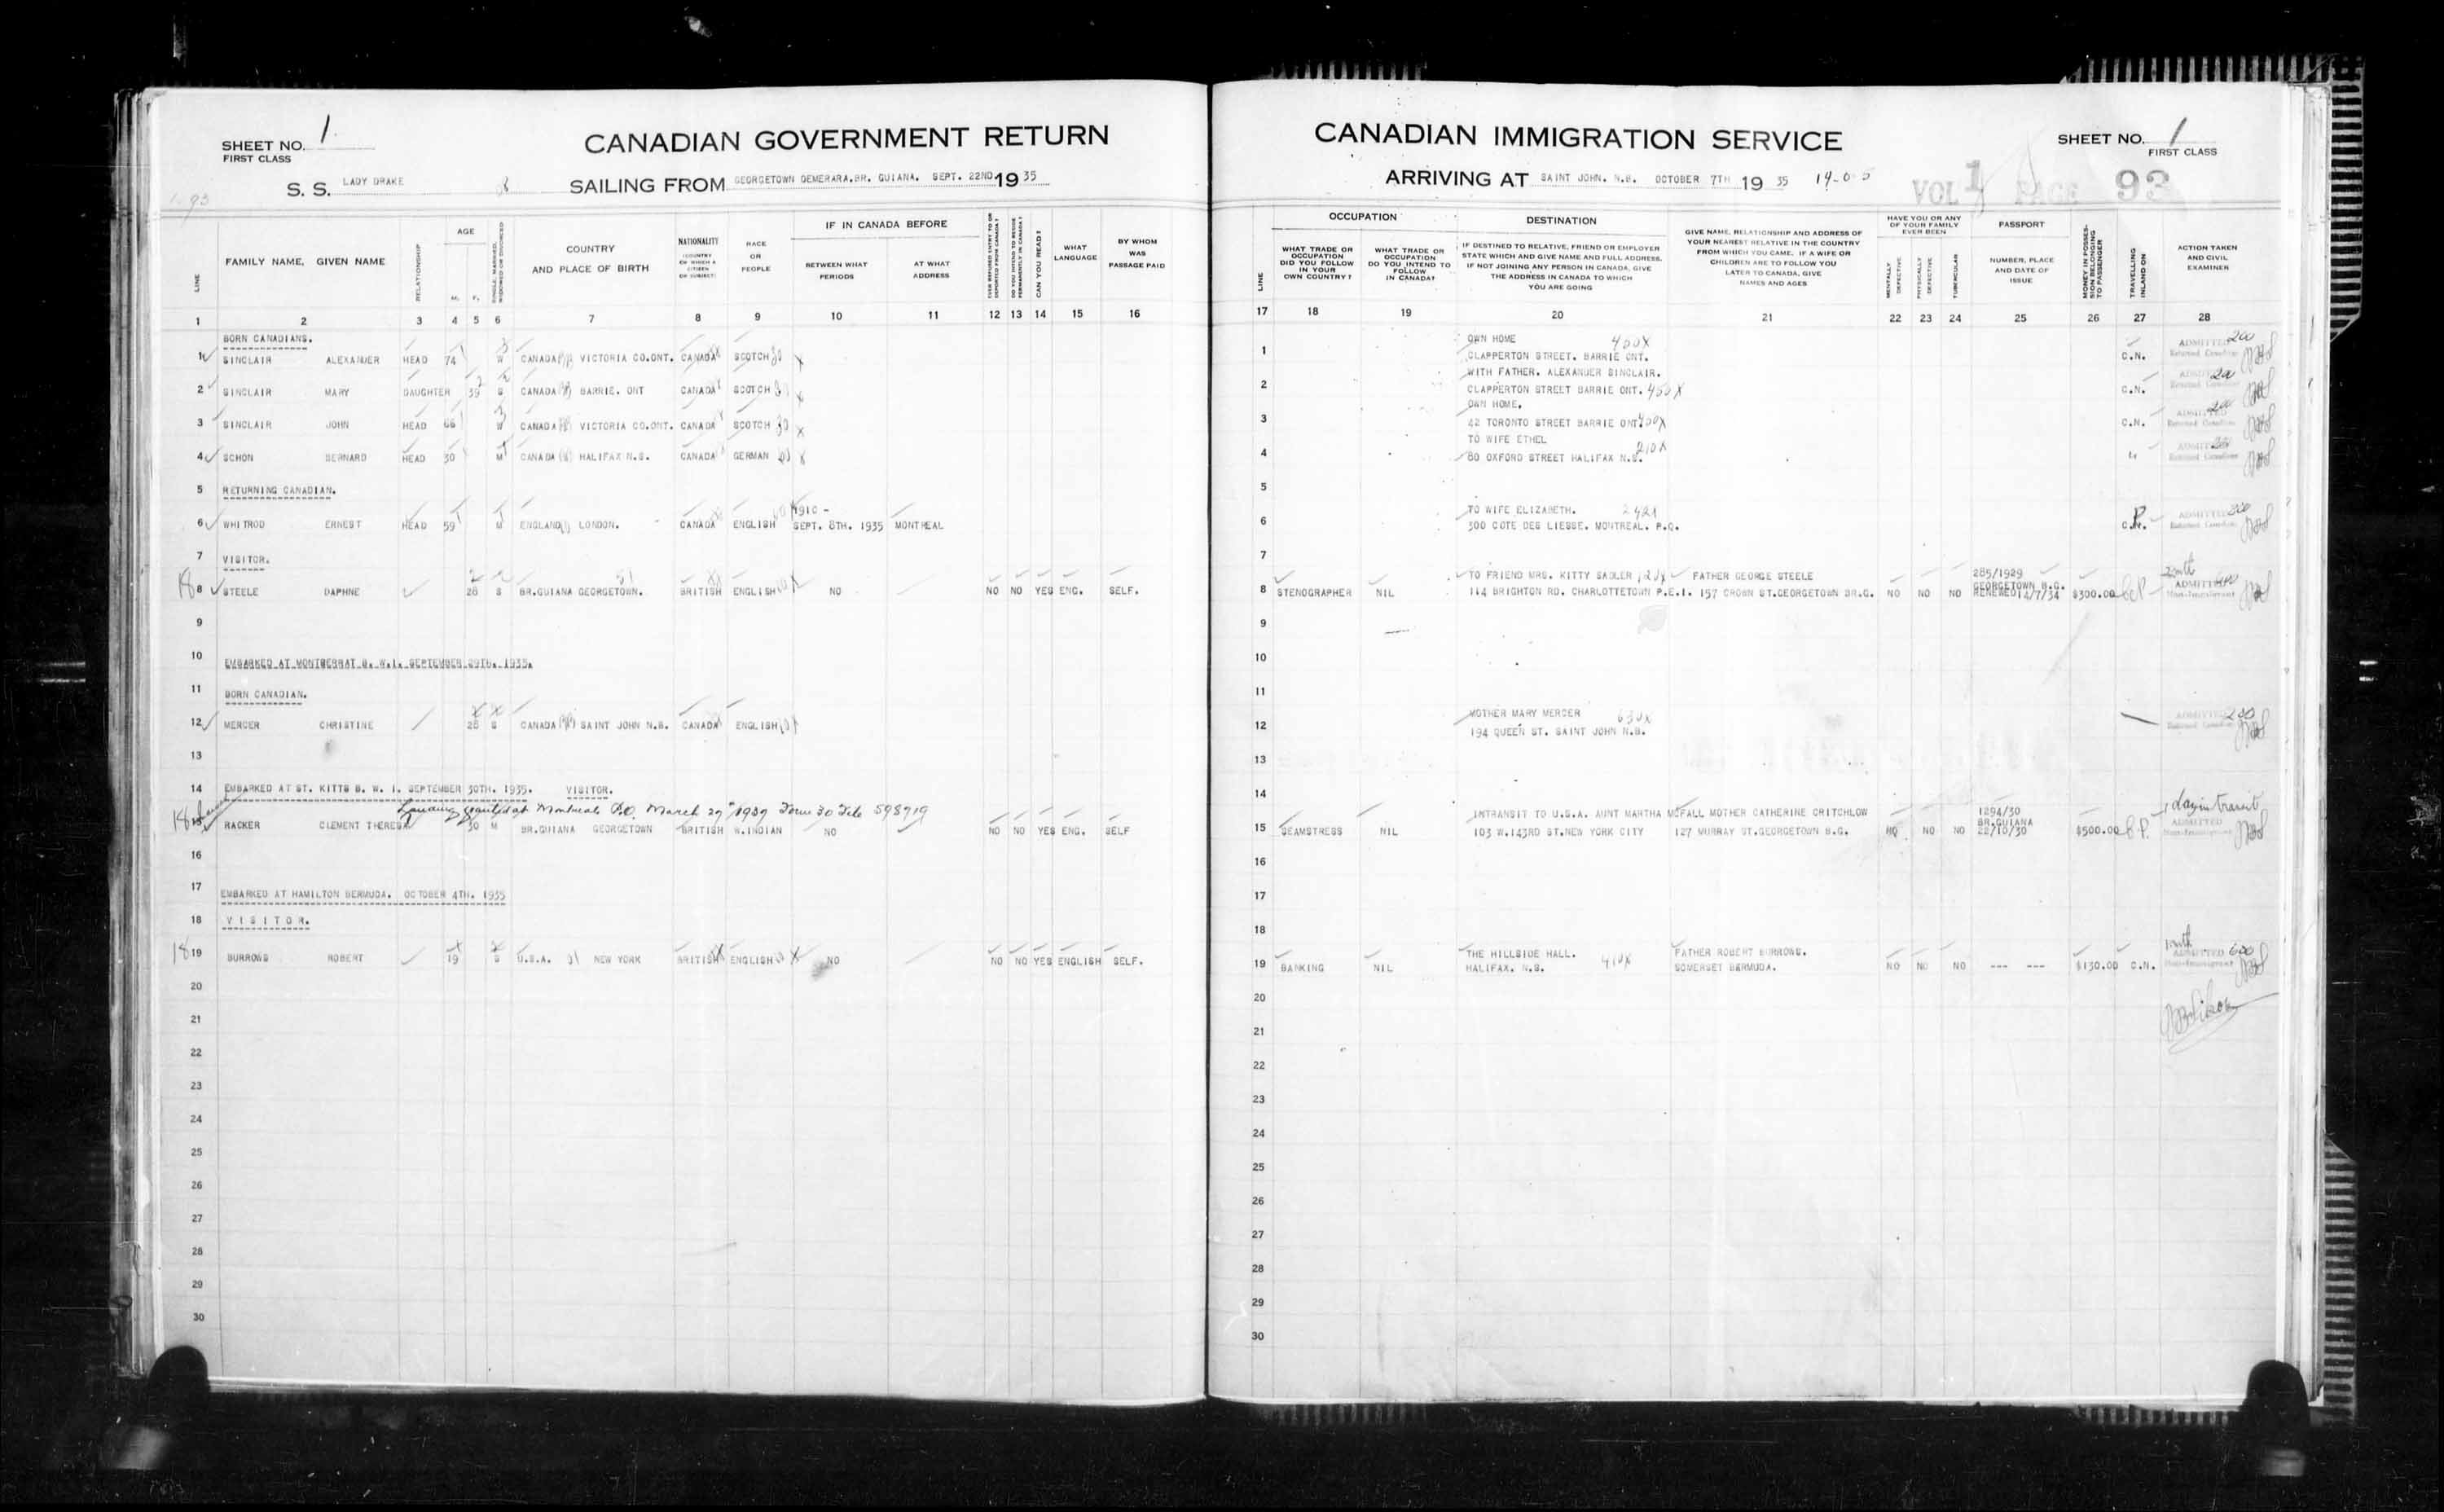 Title: Passenger Lists: Saint John (1925-1935) - Mikan Number: 134836 - Microform: t-14859